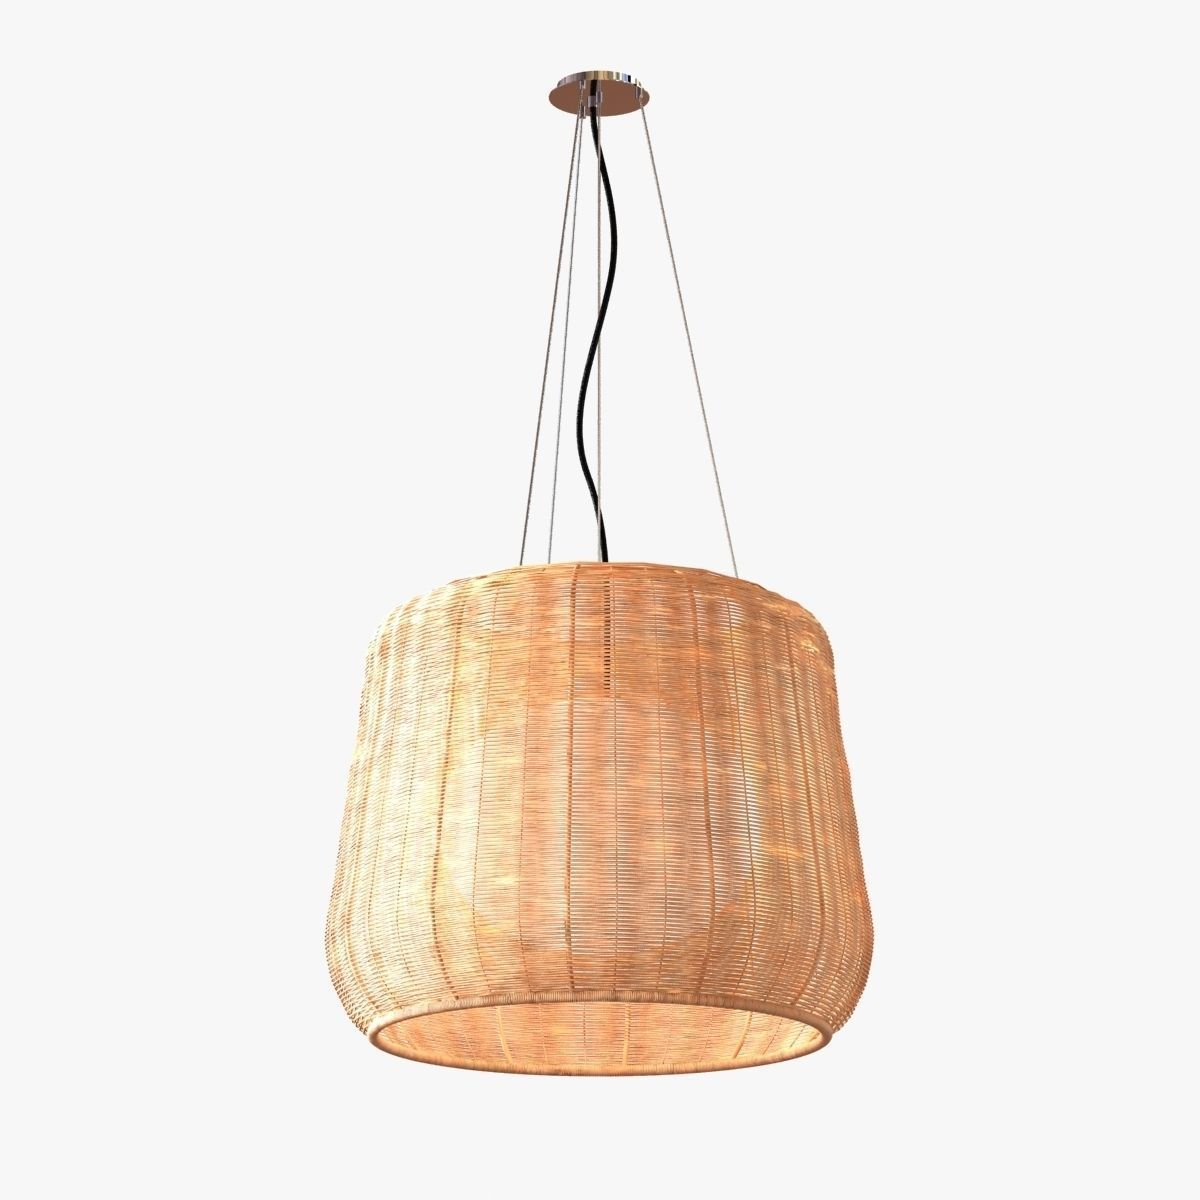 Garden Lamp 3d Model: Bover - Fora Outdoor Pendant Light 3D